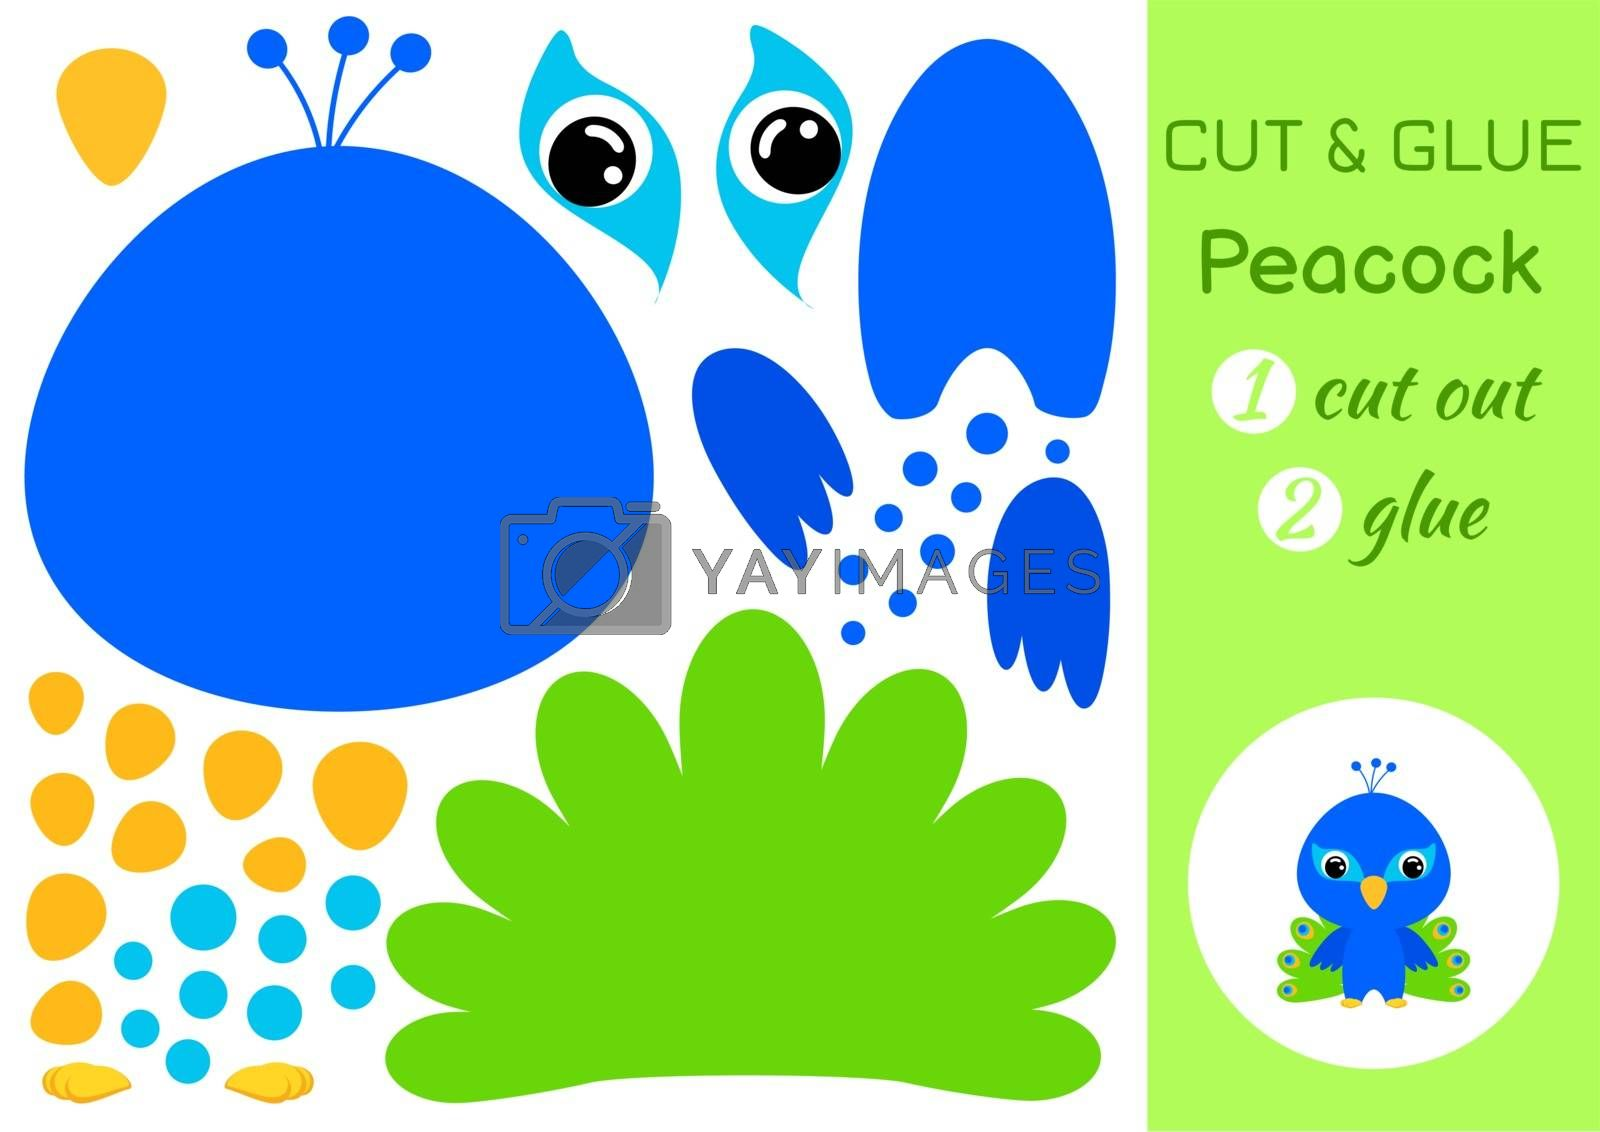 Cut and glue baby peacock. Education developing worksheet. Color paper game for preschool children. Cut parts of image and glue on paper. Cartoon character. Colorful vector stock illustration.